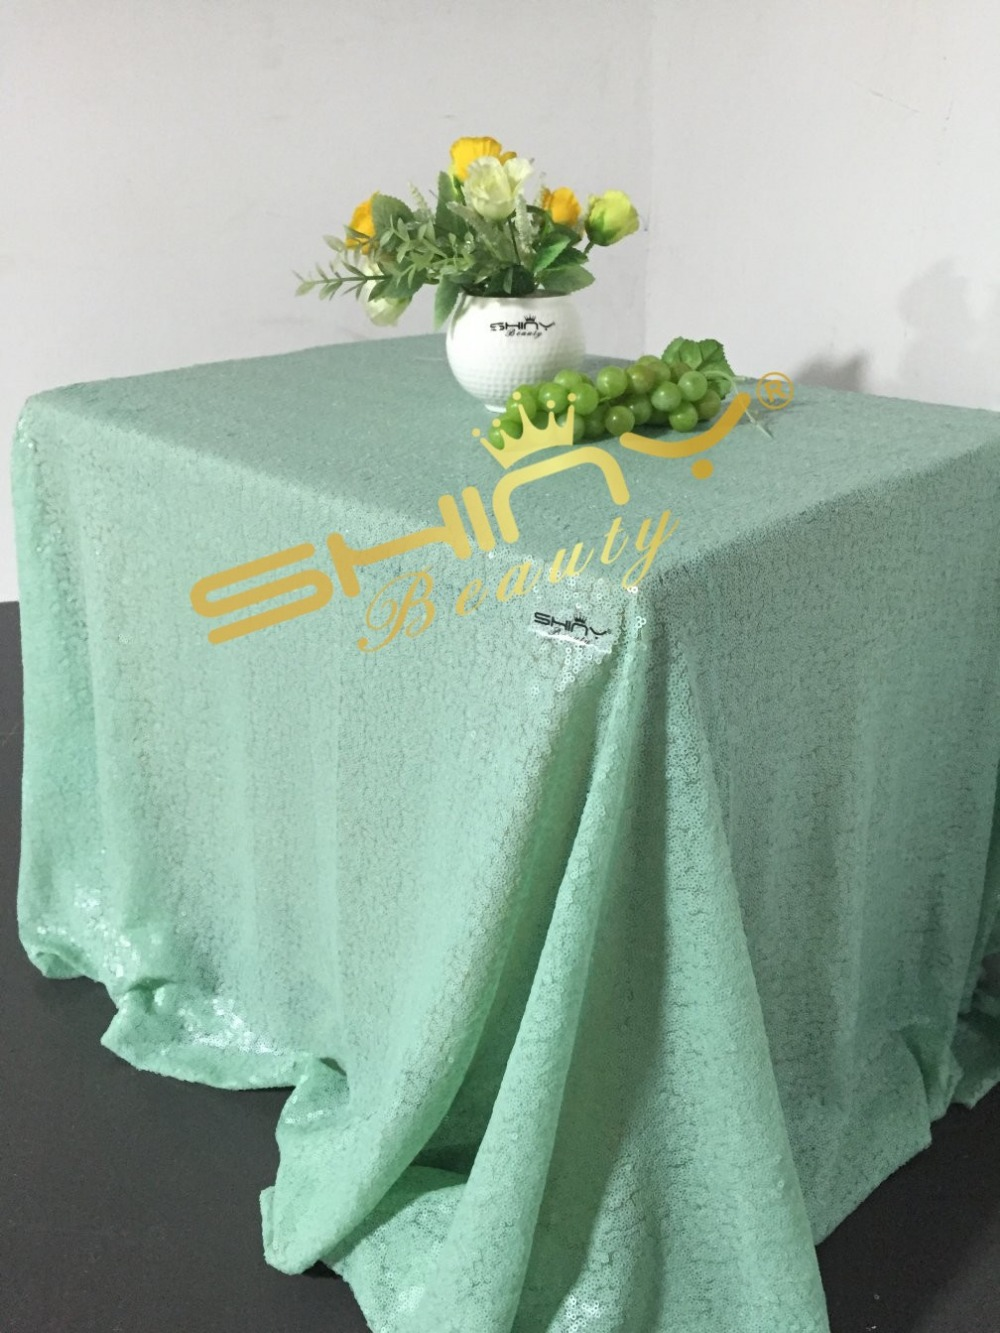 ShinyBeauty Popular Mint Green Sequin tablecloth On sale! Sequin Shimmer Tablecloth 90x156 RECTANGULAR-a